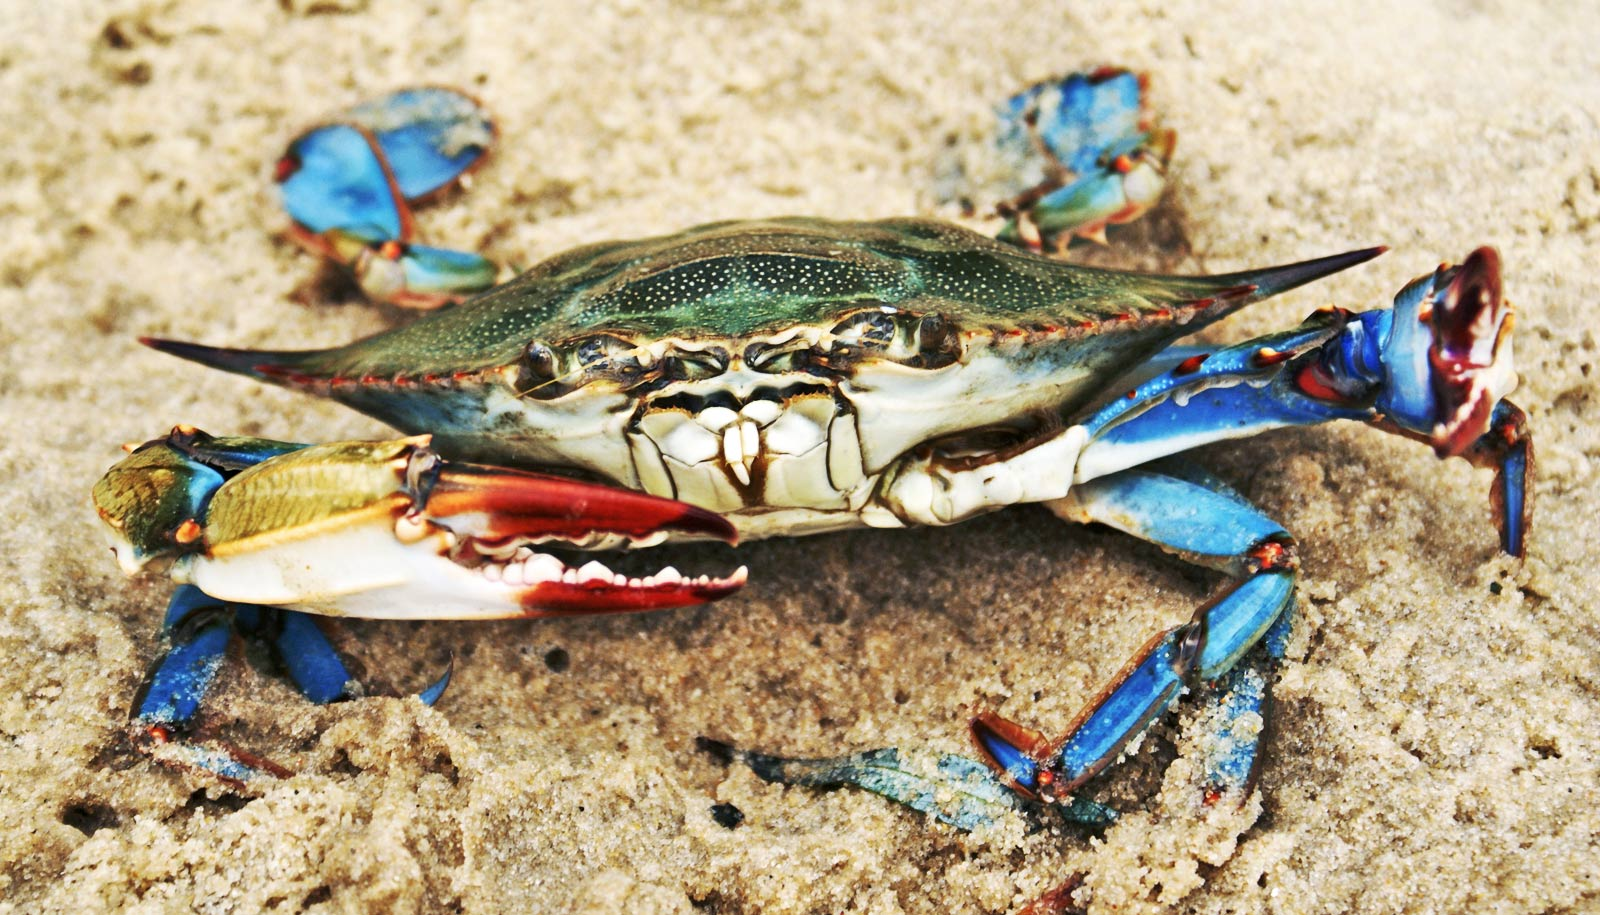 Food web shows winners and losers 7 years after Deepwater